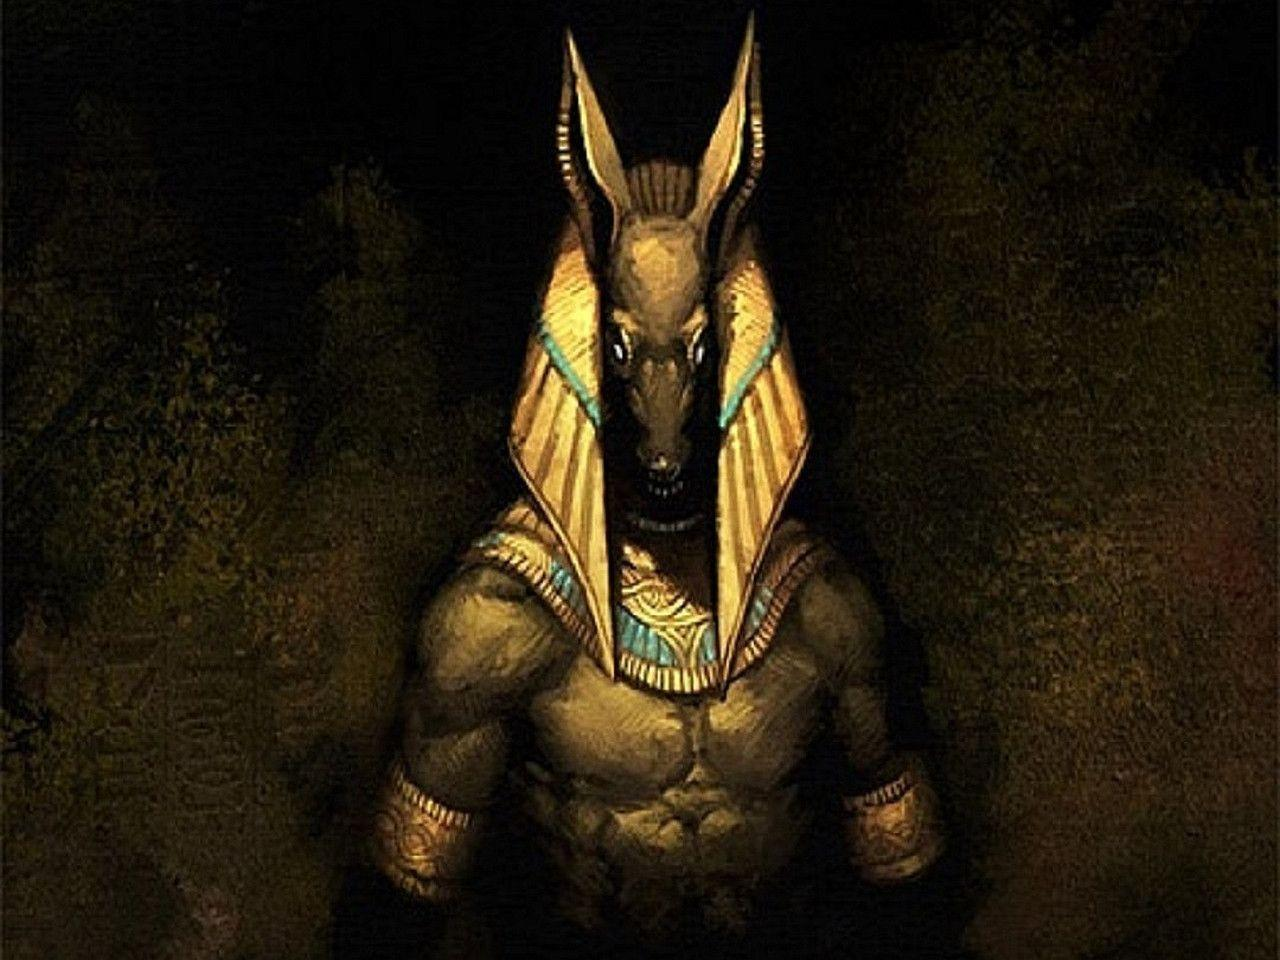 anubis wallpaper for pc - photo #18